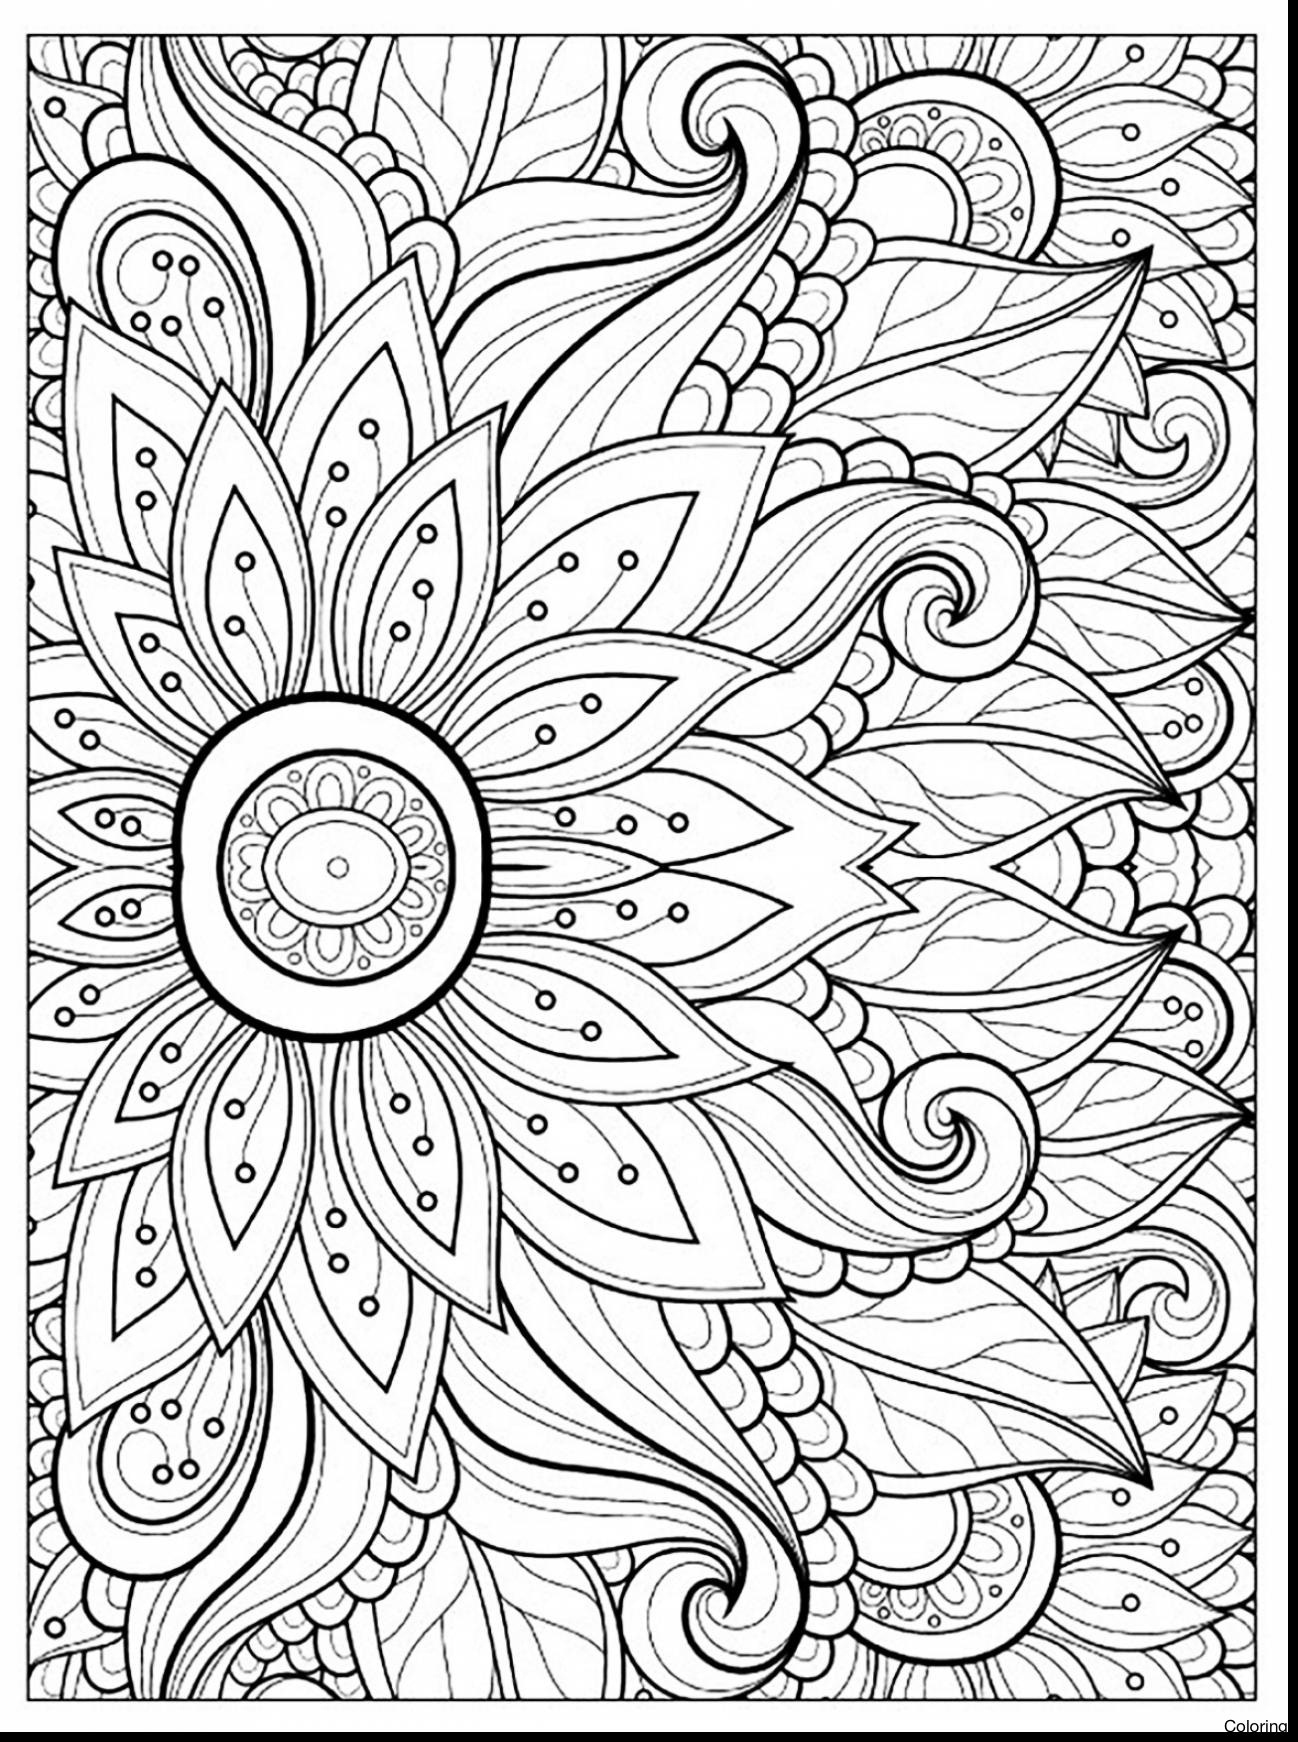 Coloring Ideas : Awesome Free Printable Holiday Adult Coloring Pages - Free Printable Coloring Pages For Adults Pdf